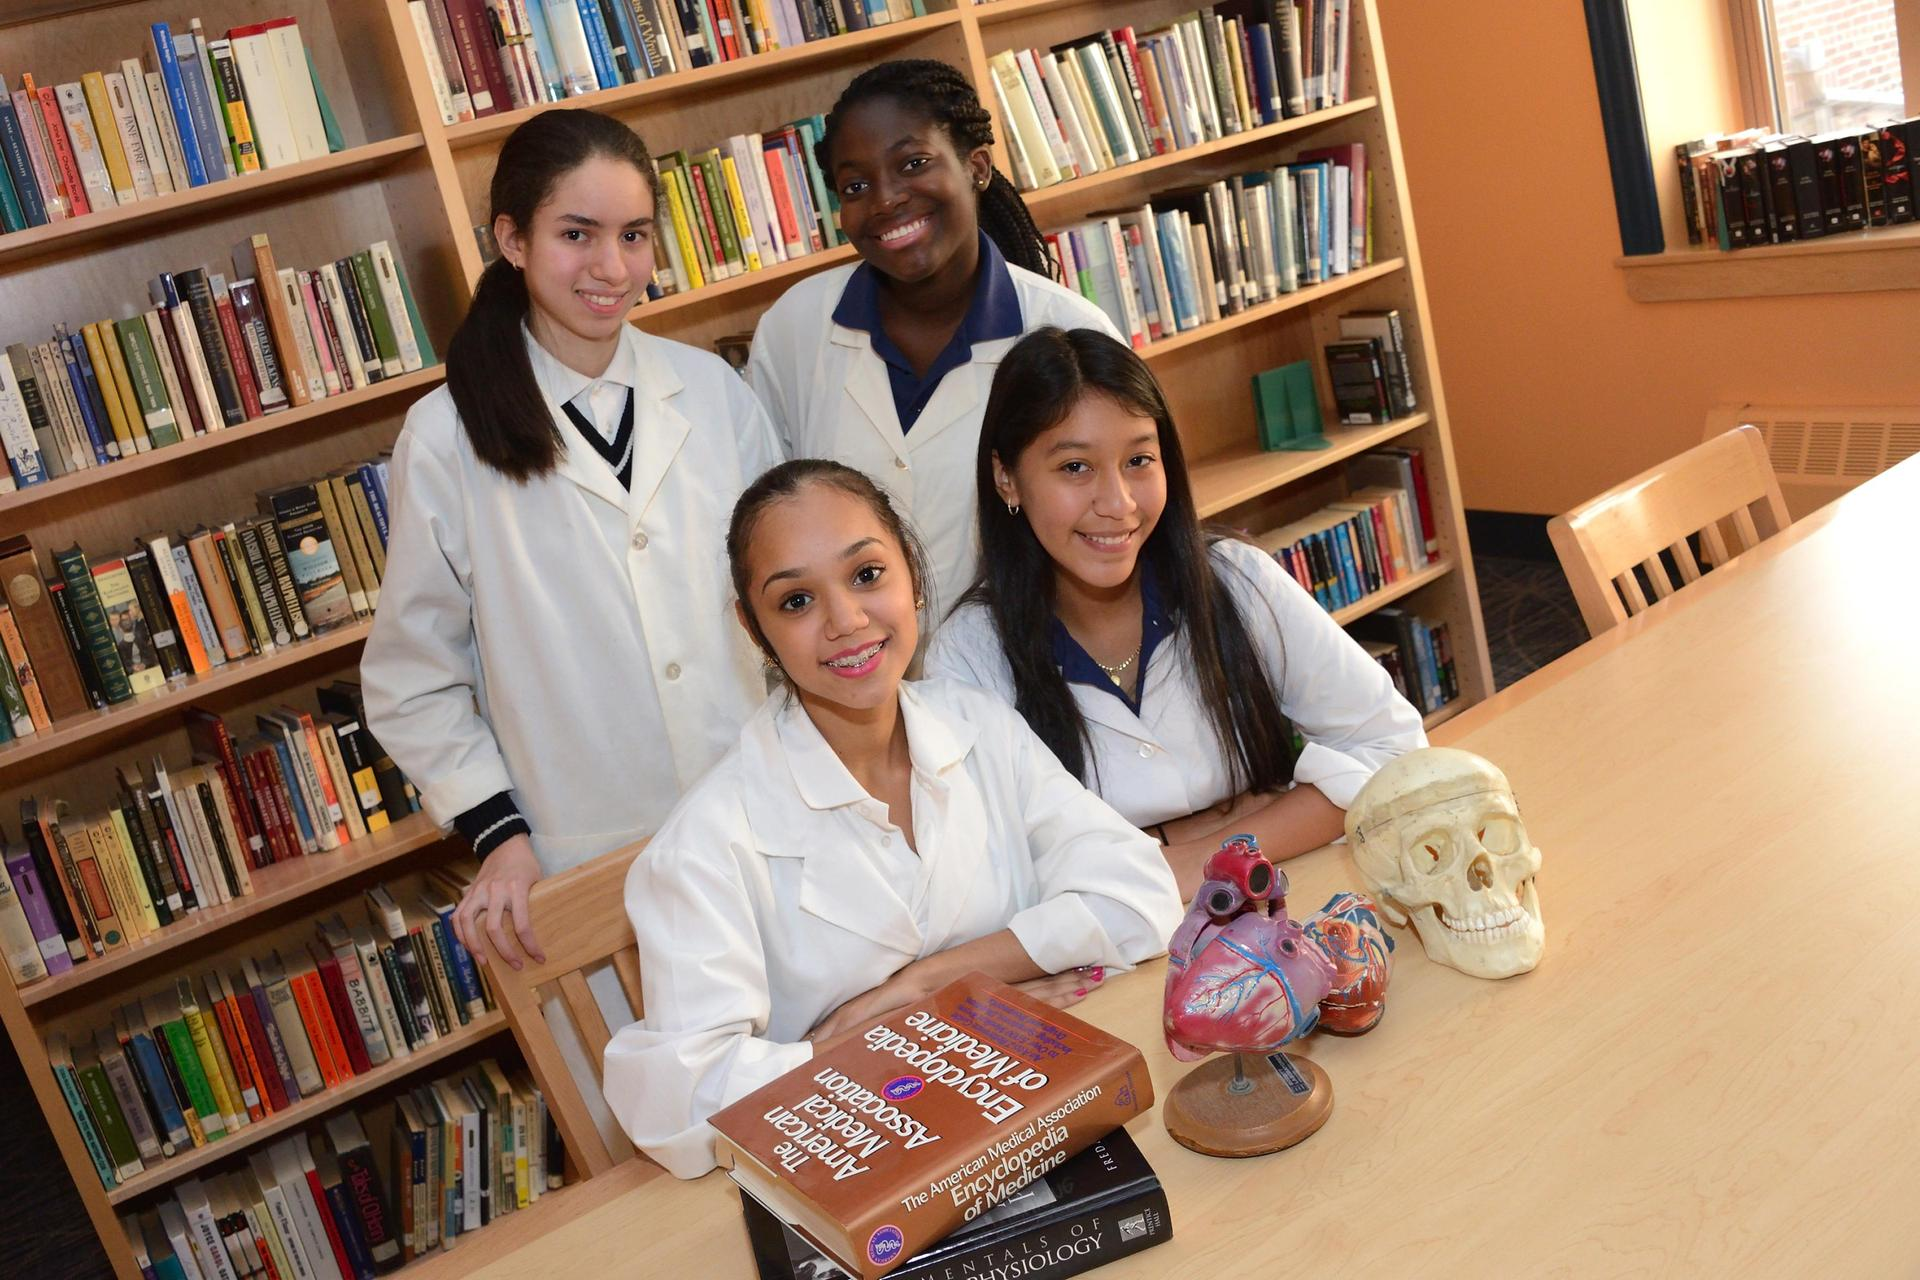 Girls have the chance to learn about science